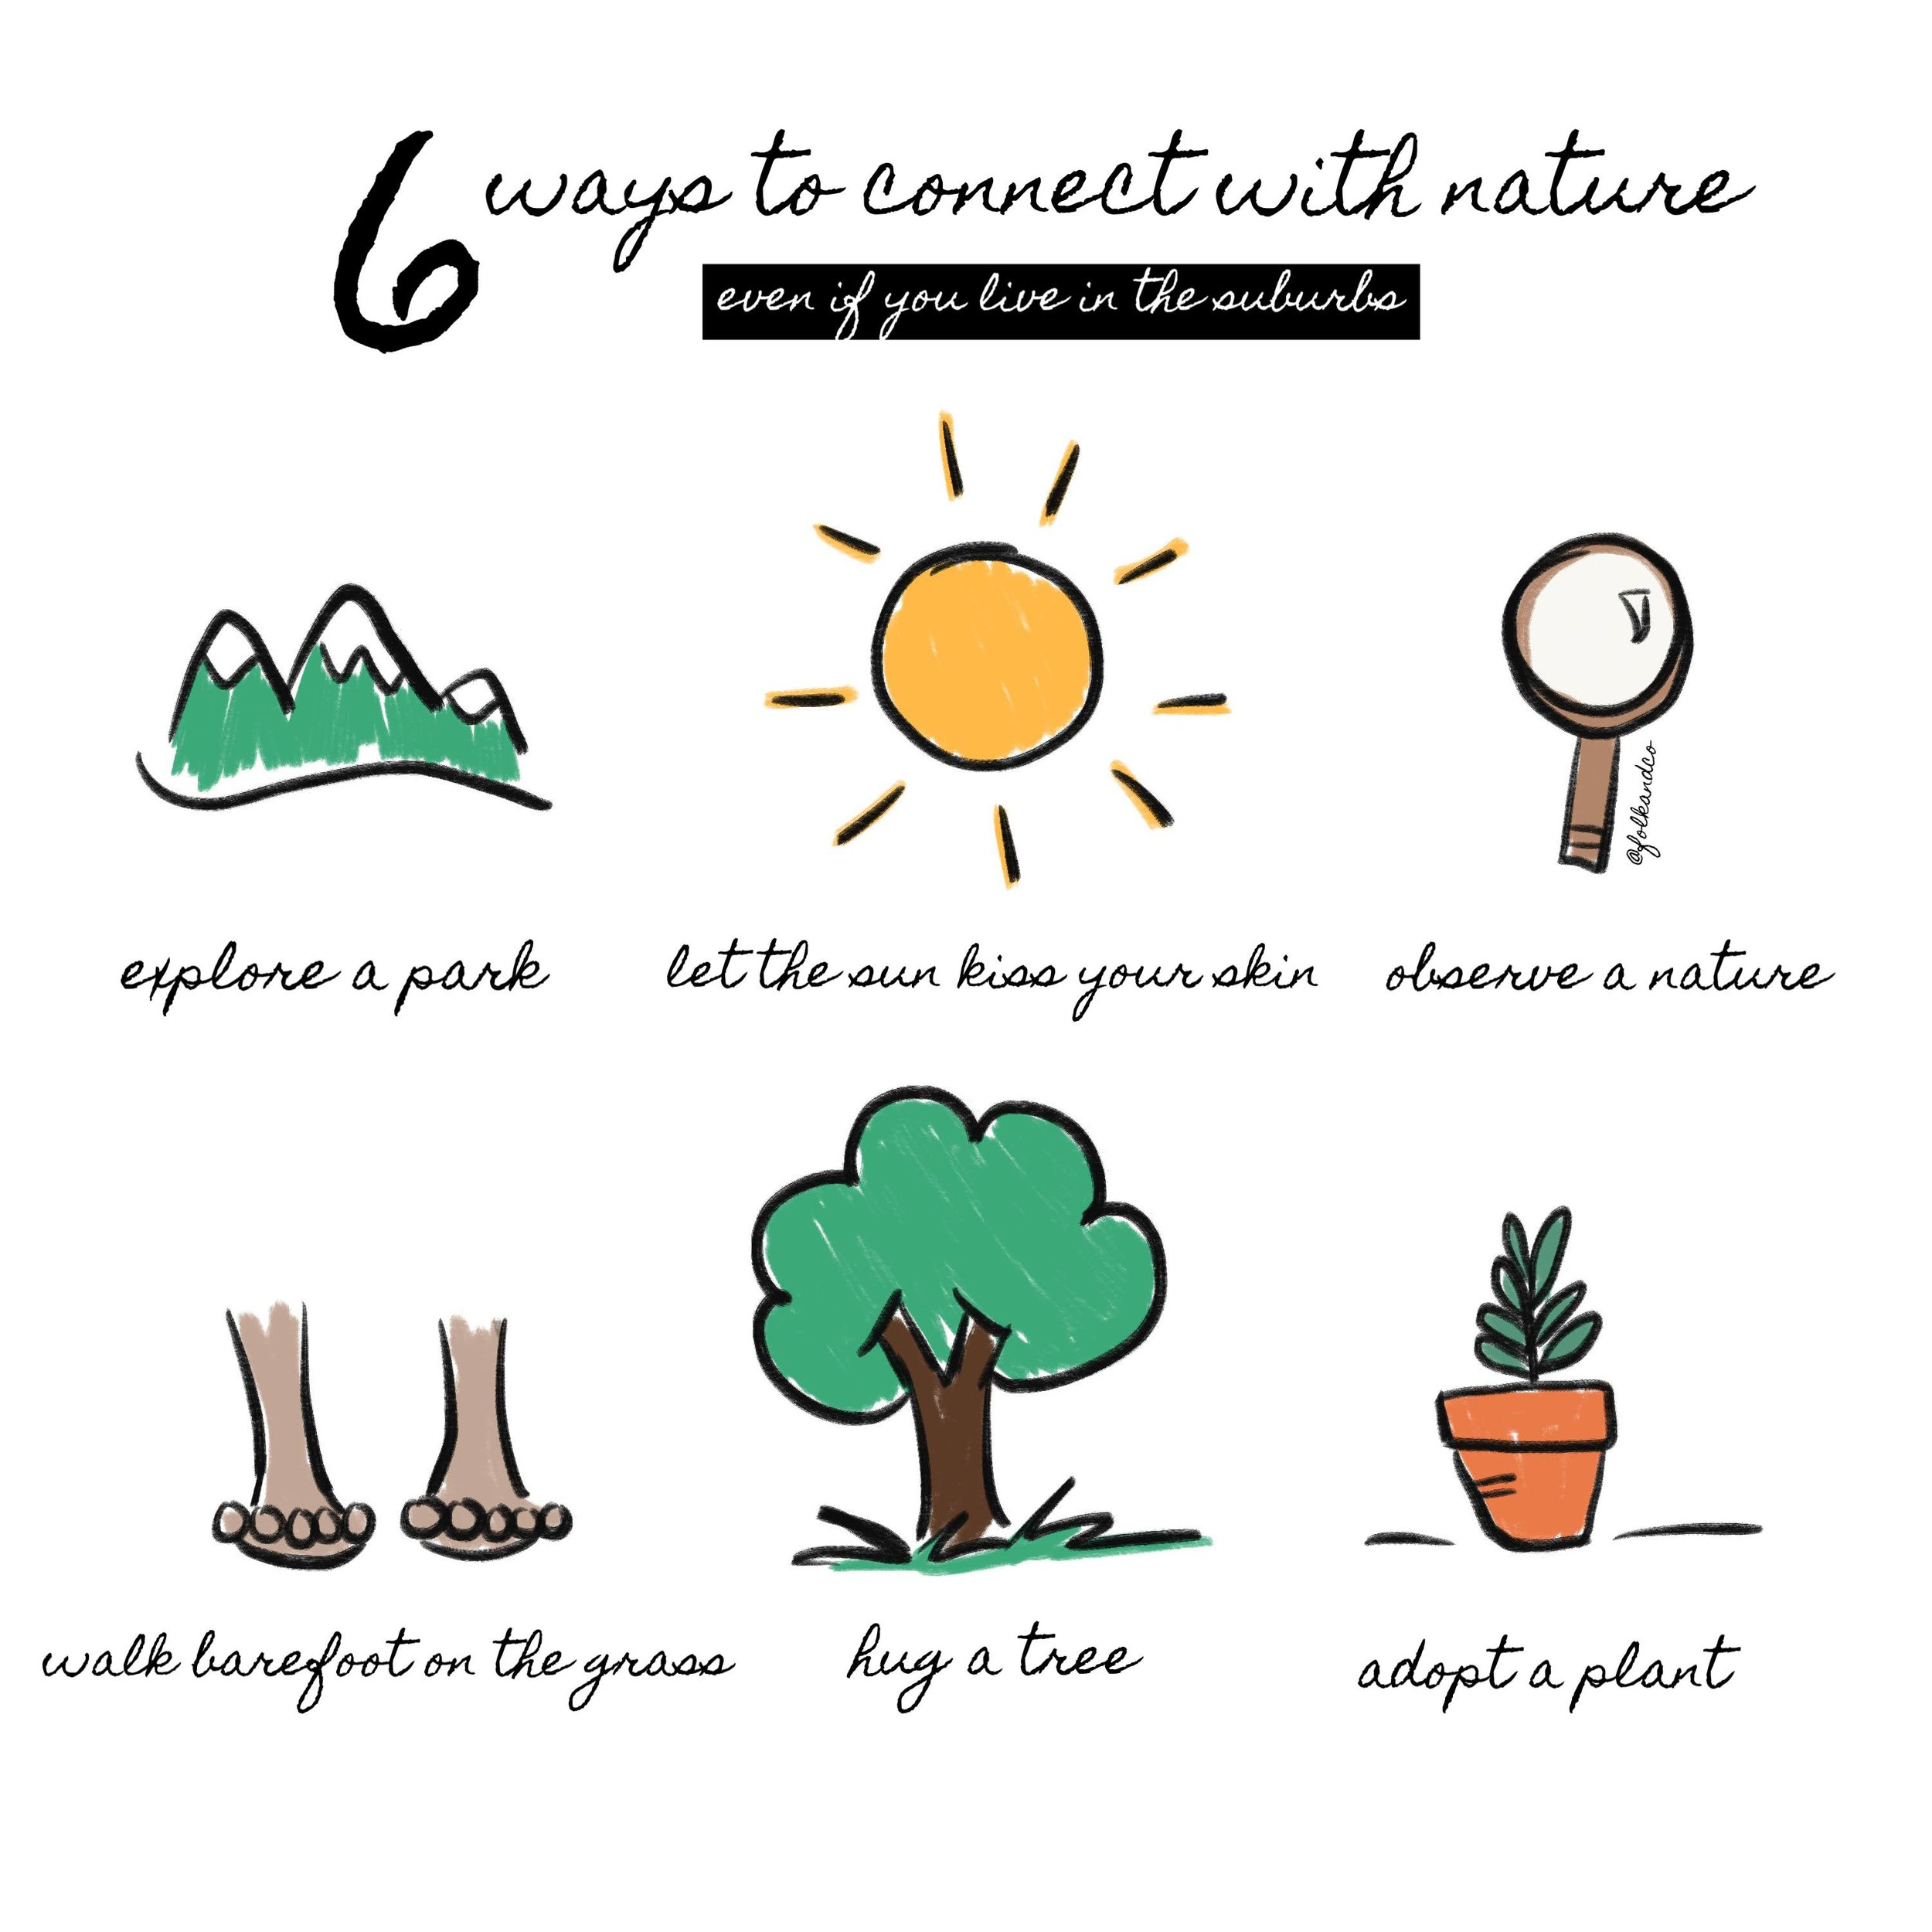 ways to connect with nature in the suburbs